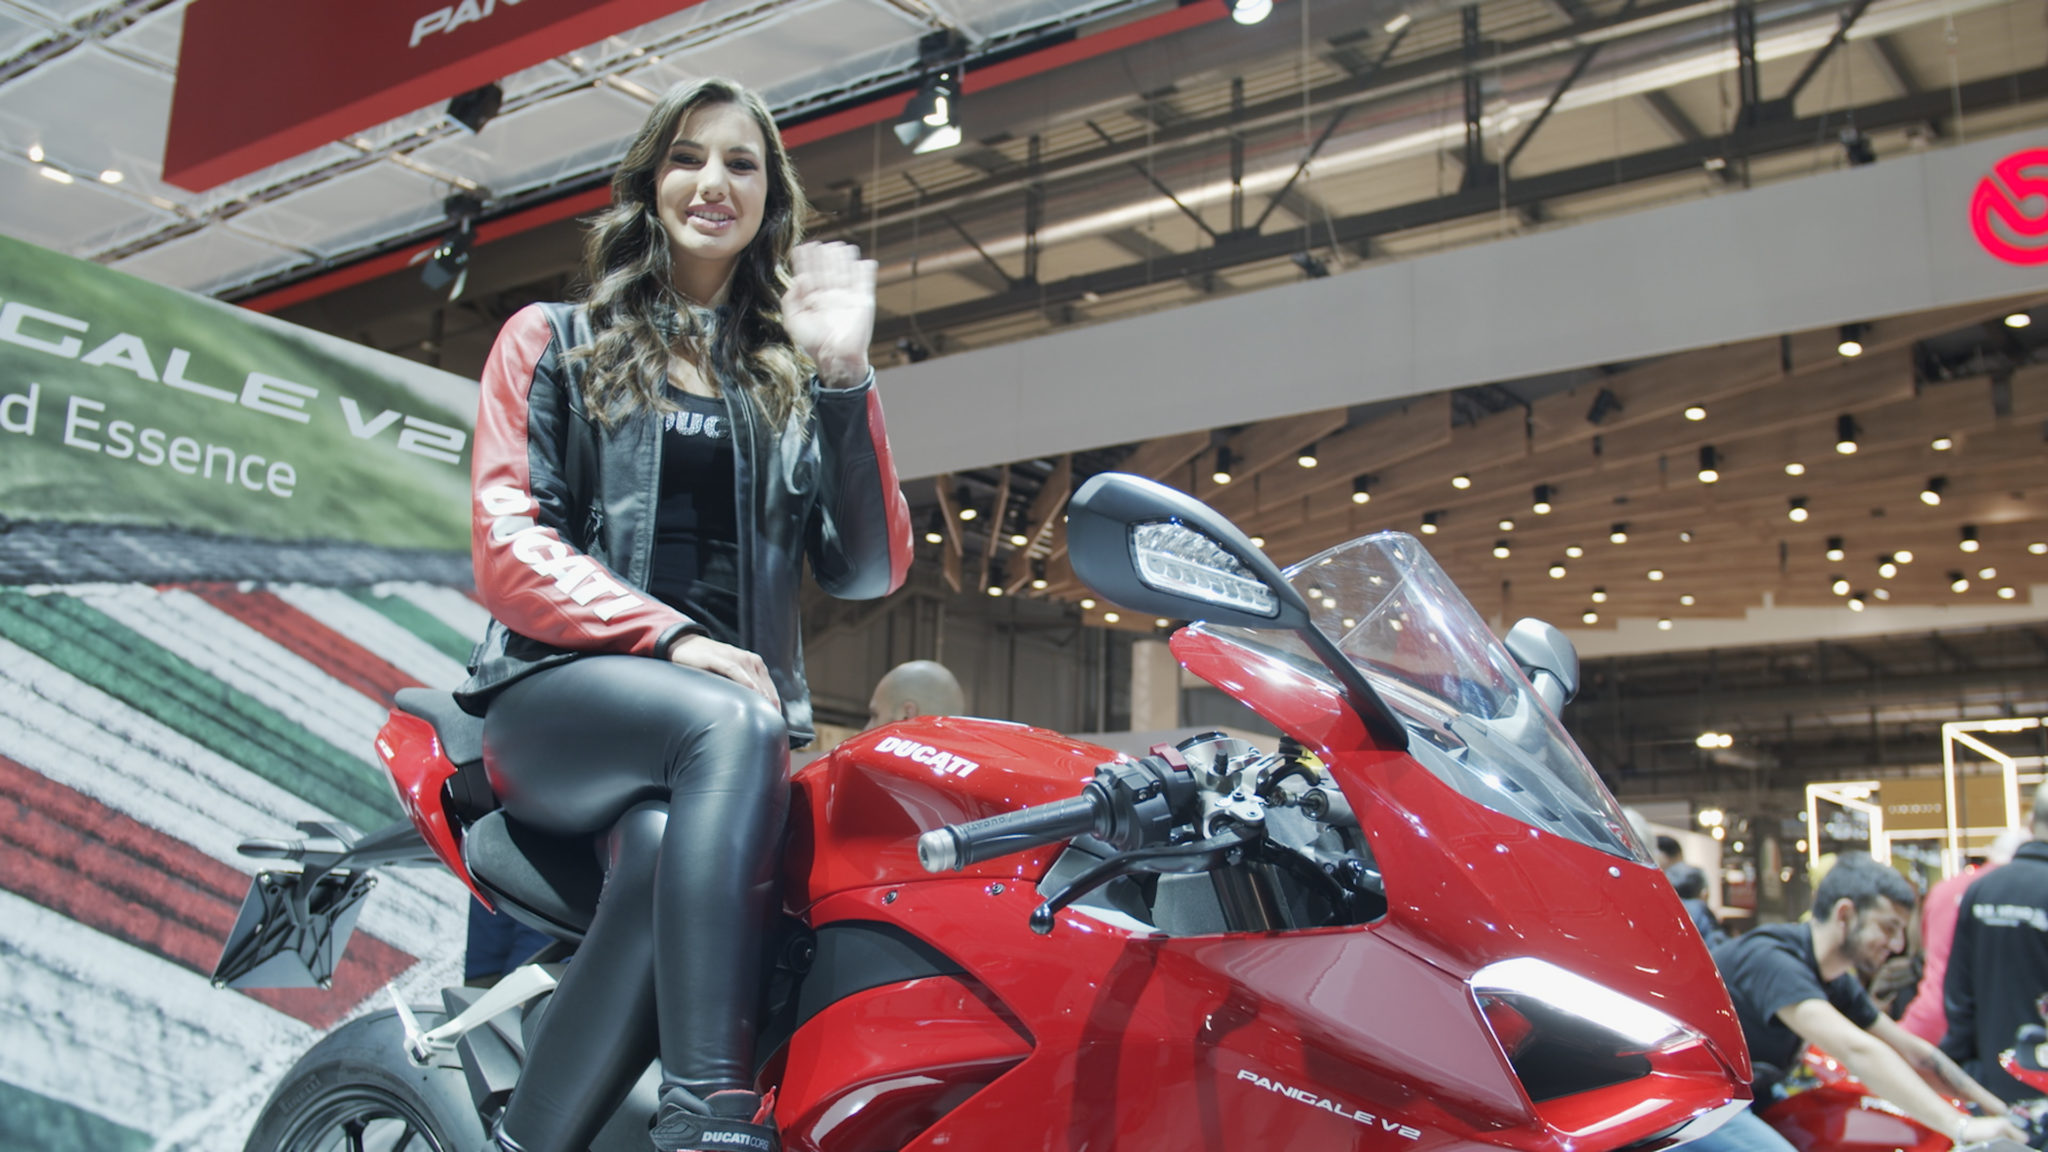 Motorcycle Show 2020.Eicma 2019 These Are All The New Motorcycles 2020 Presented